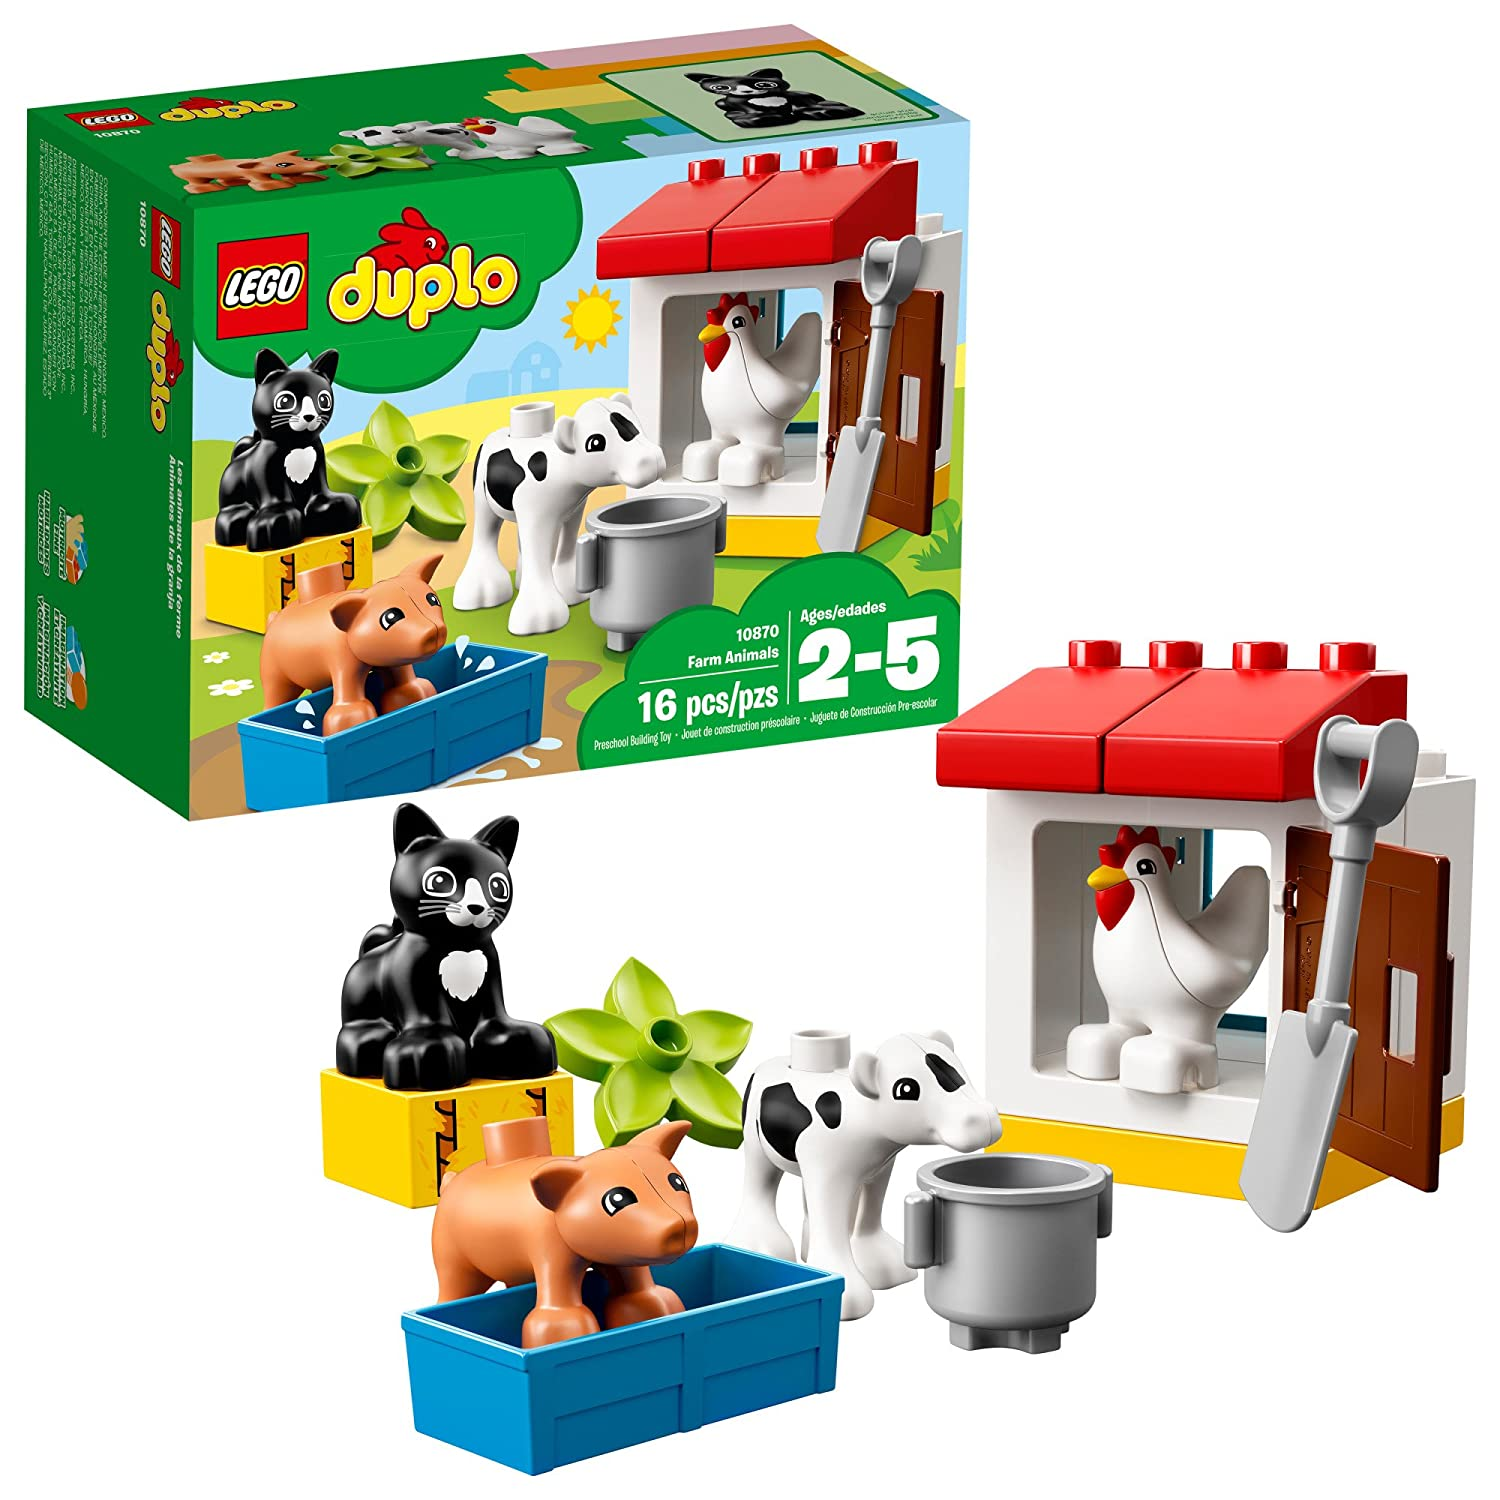 LEGO Duplo Farm Animals 10870 6213560